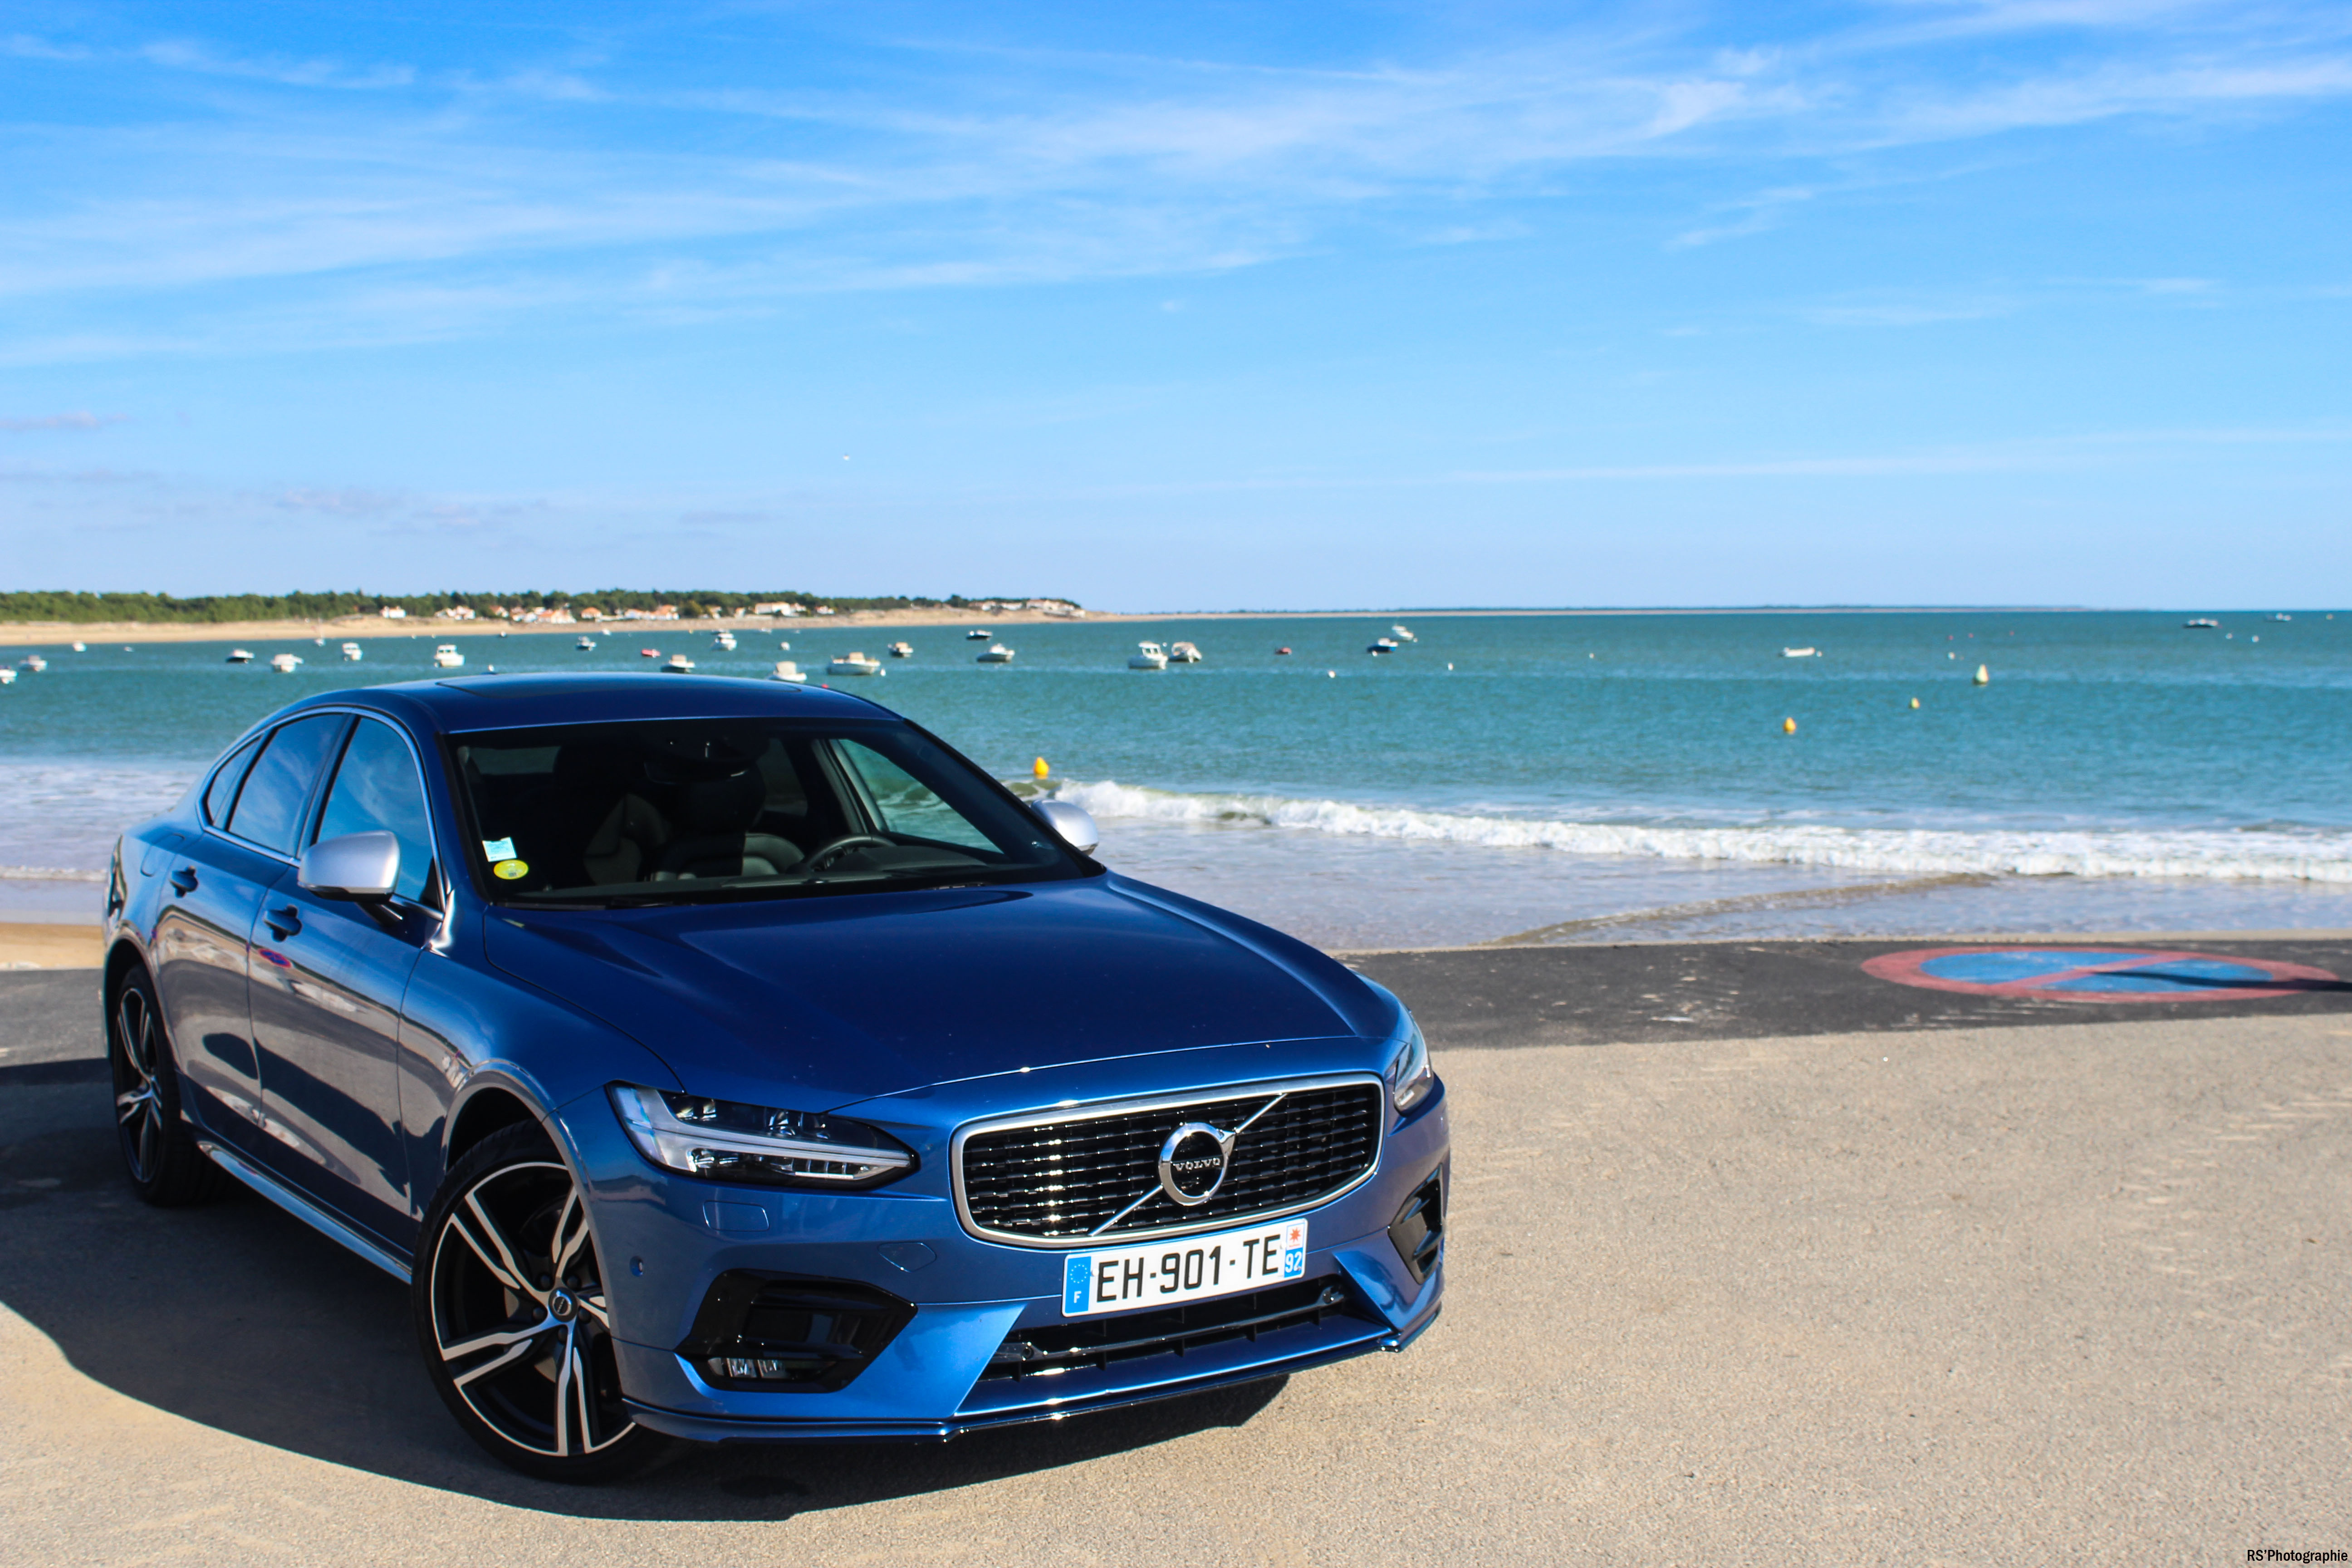 volvos901-volvo-s90-d3-avant-front-Arnaud Demasier-RSPhotographie